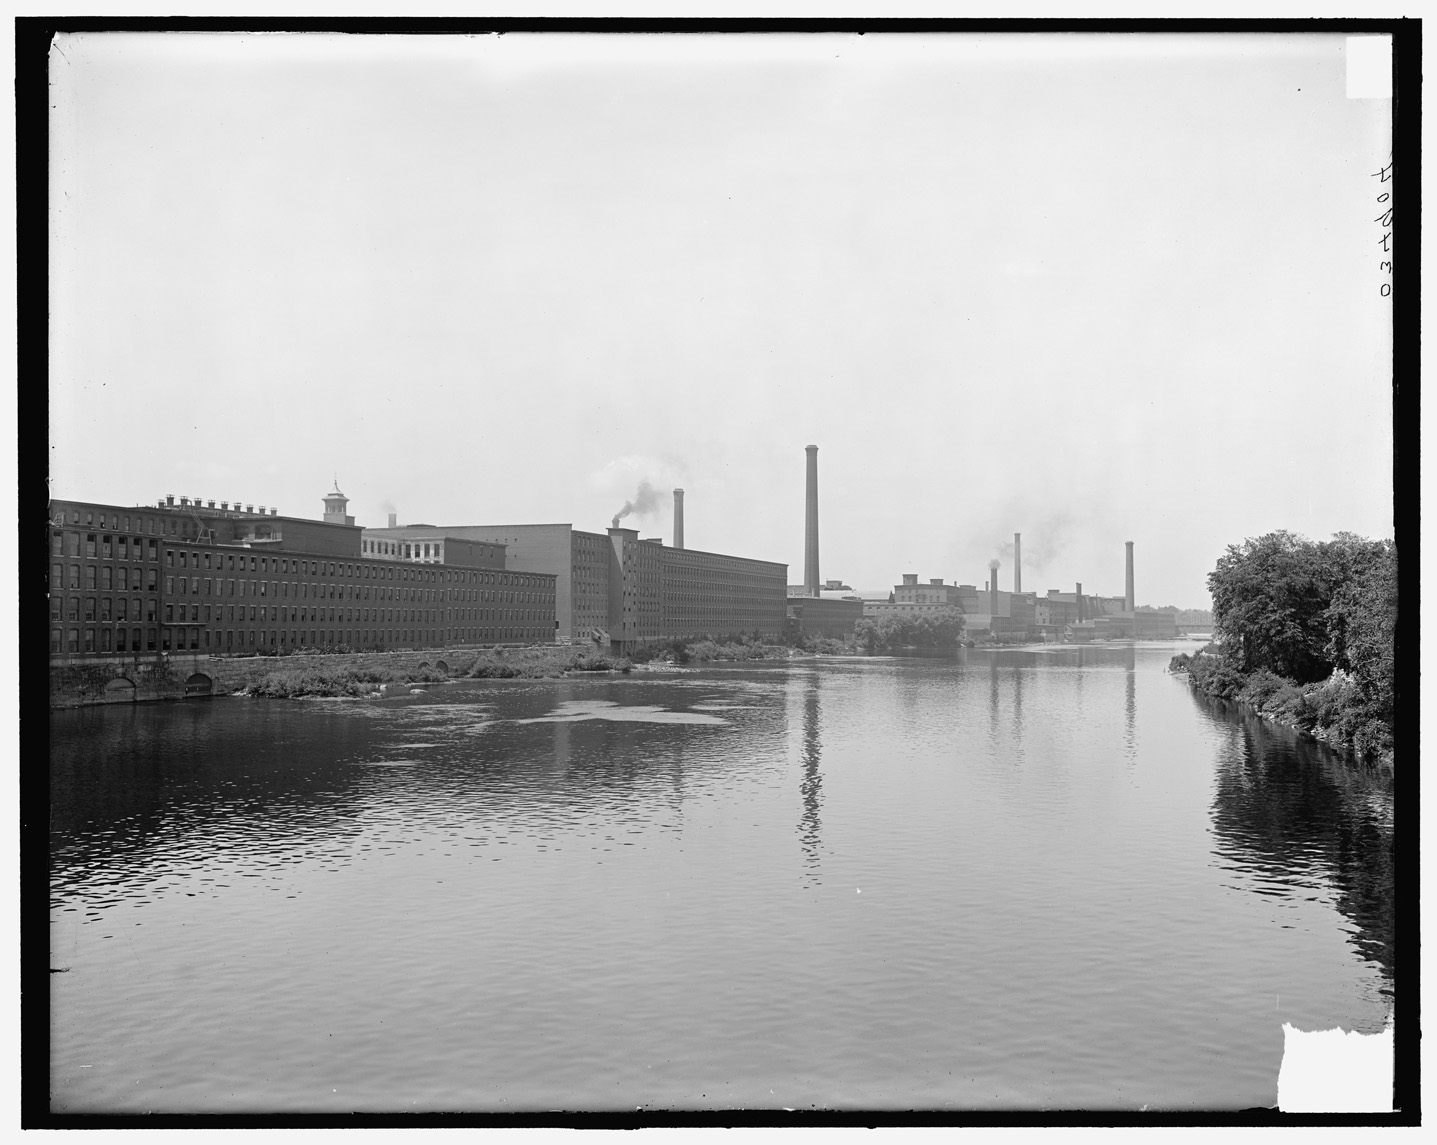 A black and white photograph shows a wide, calm river in its center. On the right, the riverbank is lined with trees. On the left, long industrial buildings about five stories tall run the length of the river. There are many big windows on the buildings and they are flat on top. Smoke stacks are seen in the distance.